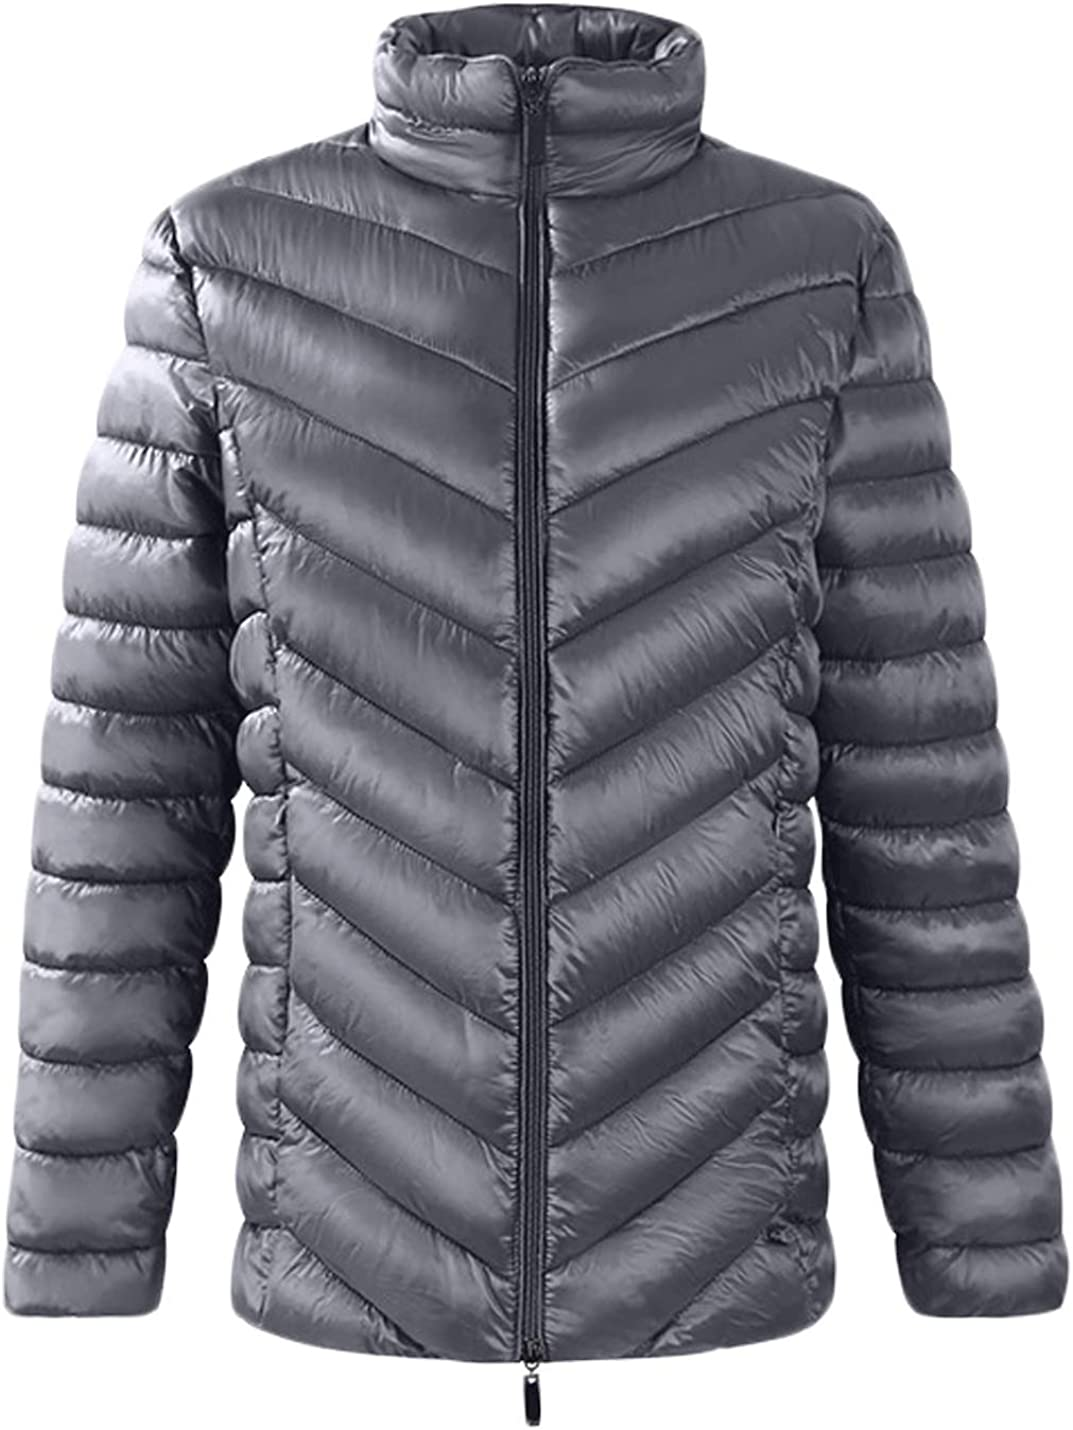 Jenkoon Women Lightweight Stand Collar Cotton Padded Quilted Coat Slim Fit Puffer Jacket